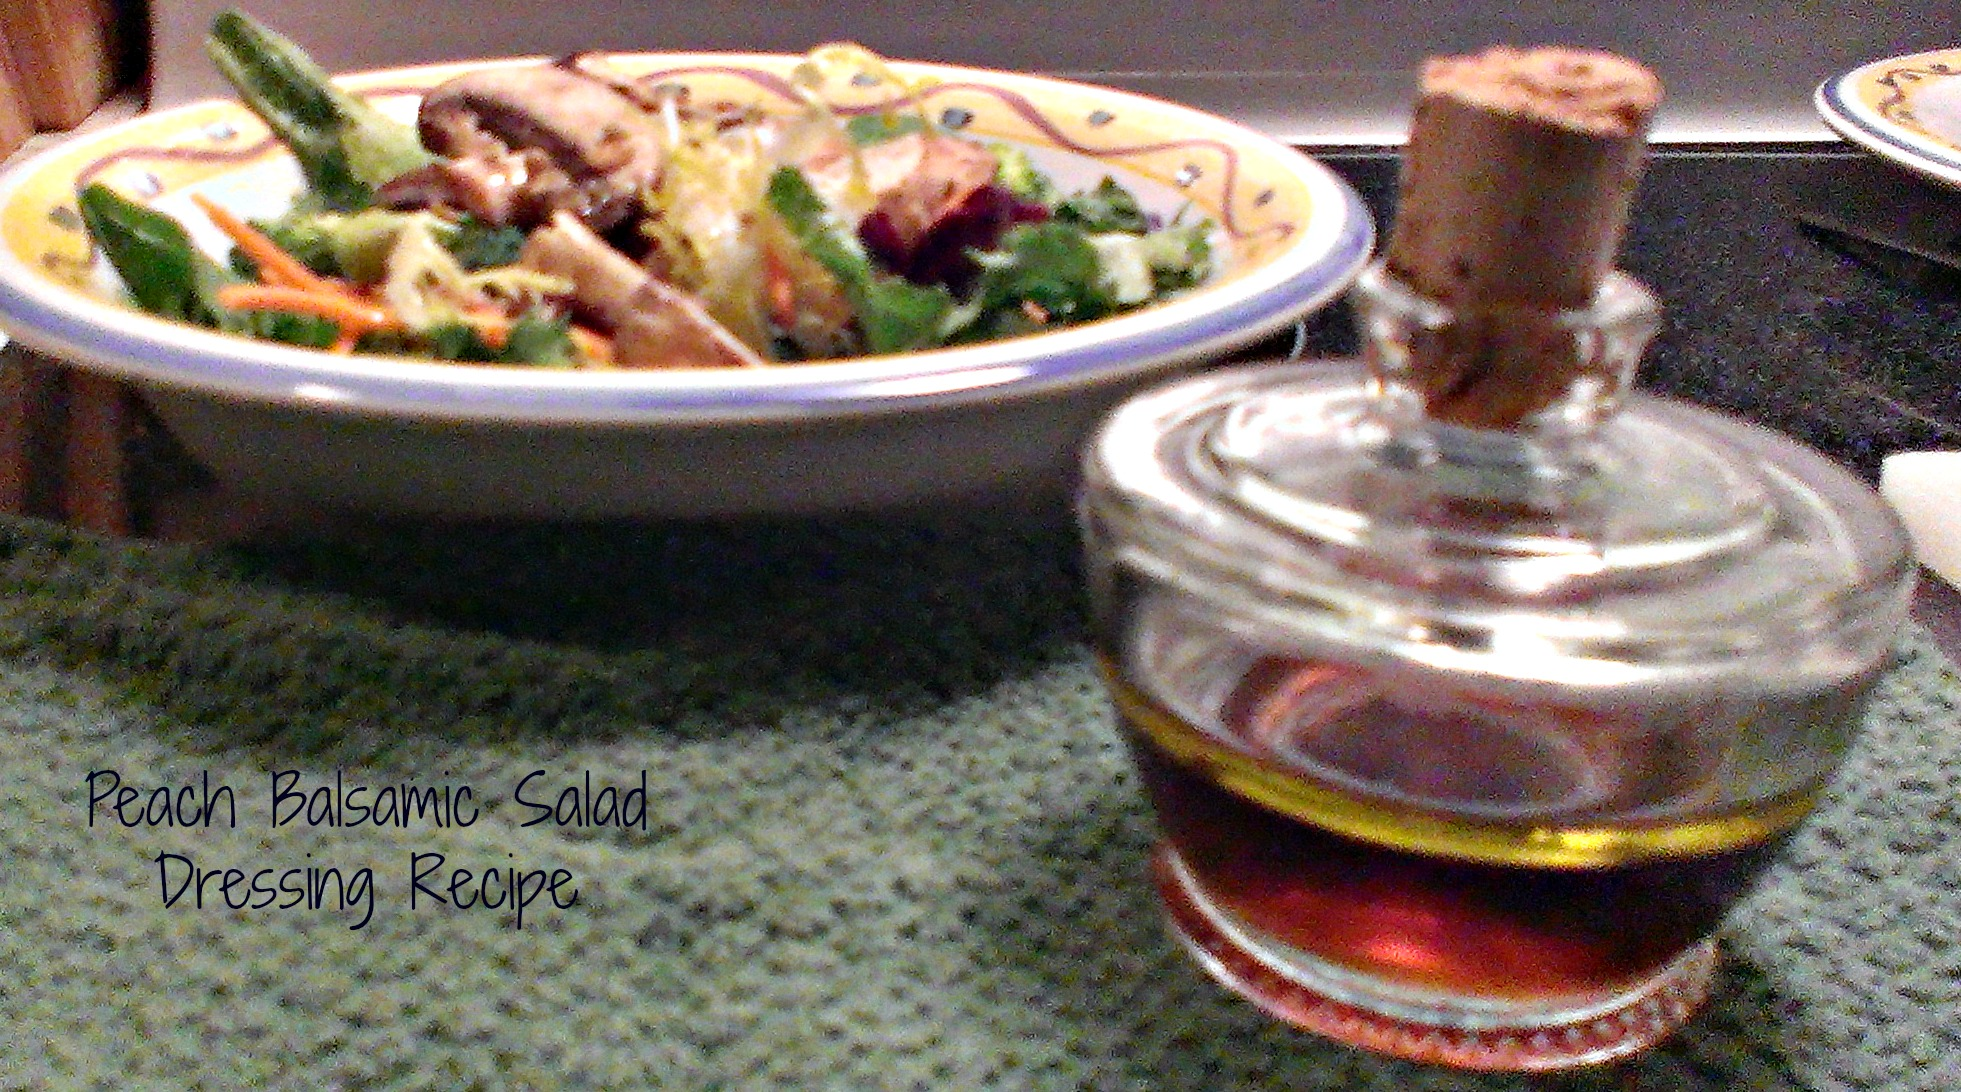 peach balsamic salad dressing recipe